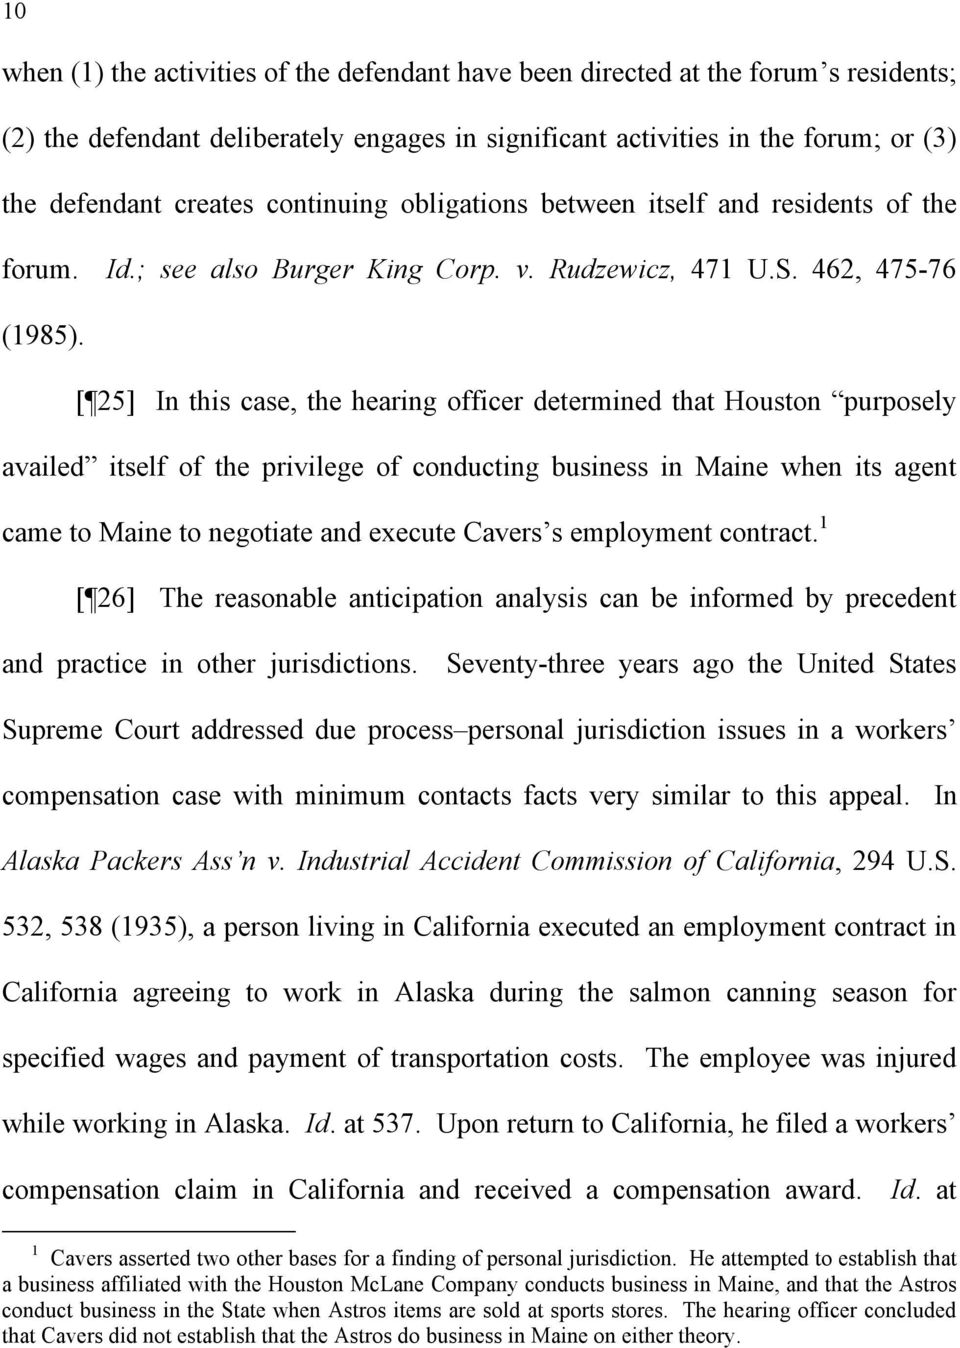 [ 25] In this case, the hearing officer determined that Houston purposely availed itself of the privilege of conducting business in Maine when its agent came to Maine to negotiate and execute Cavers